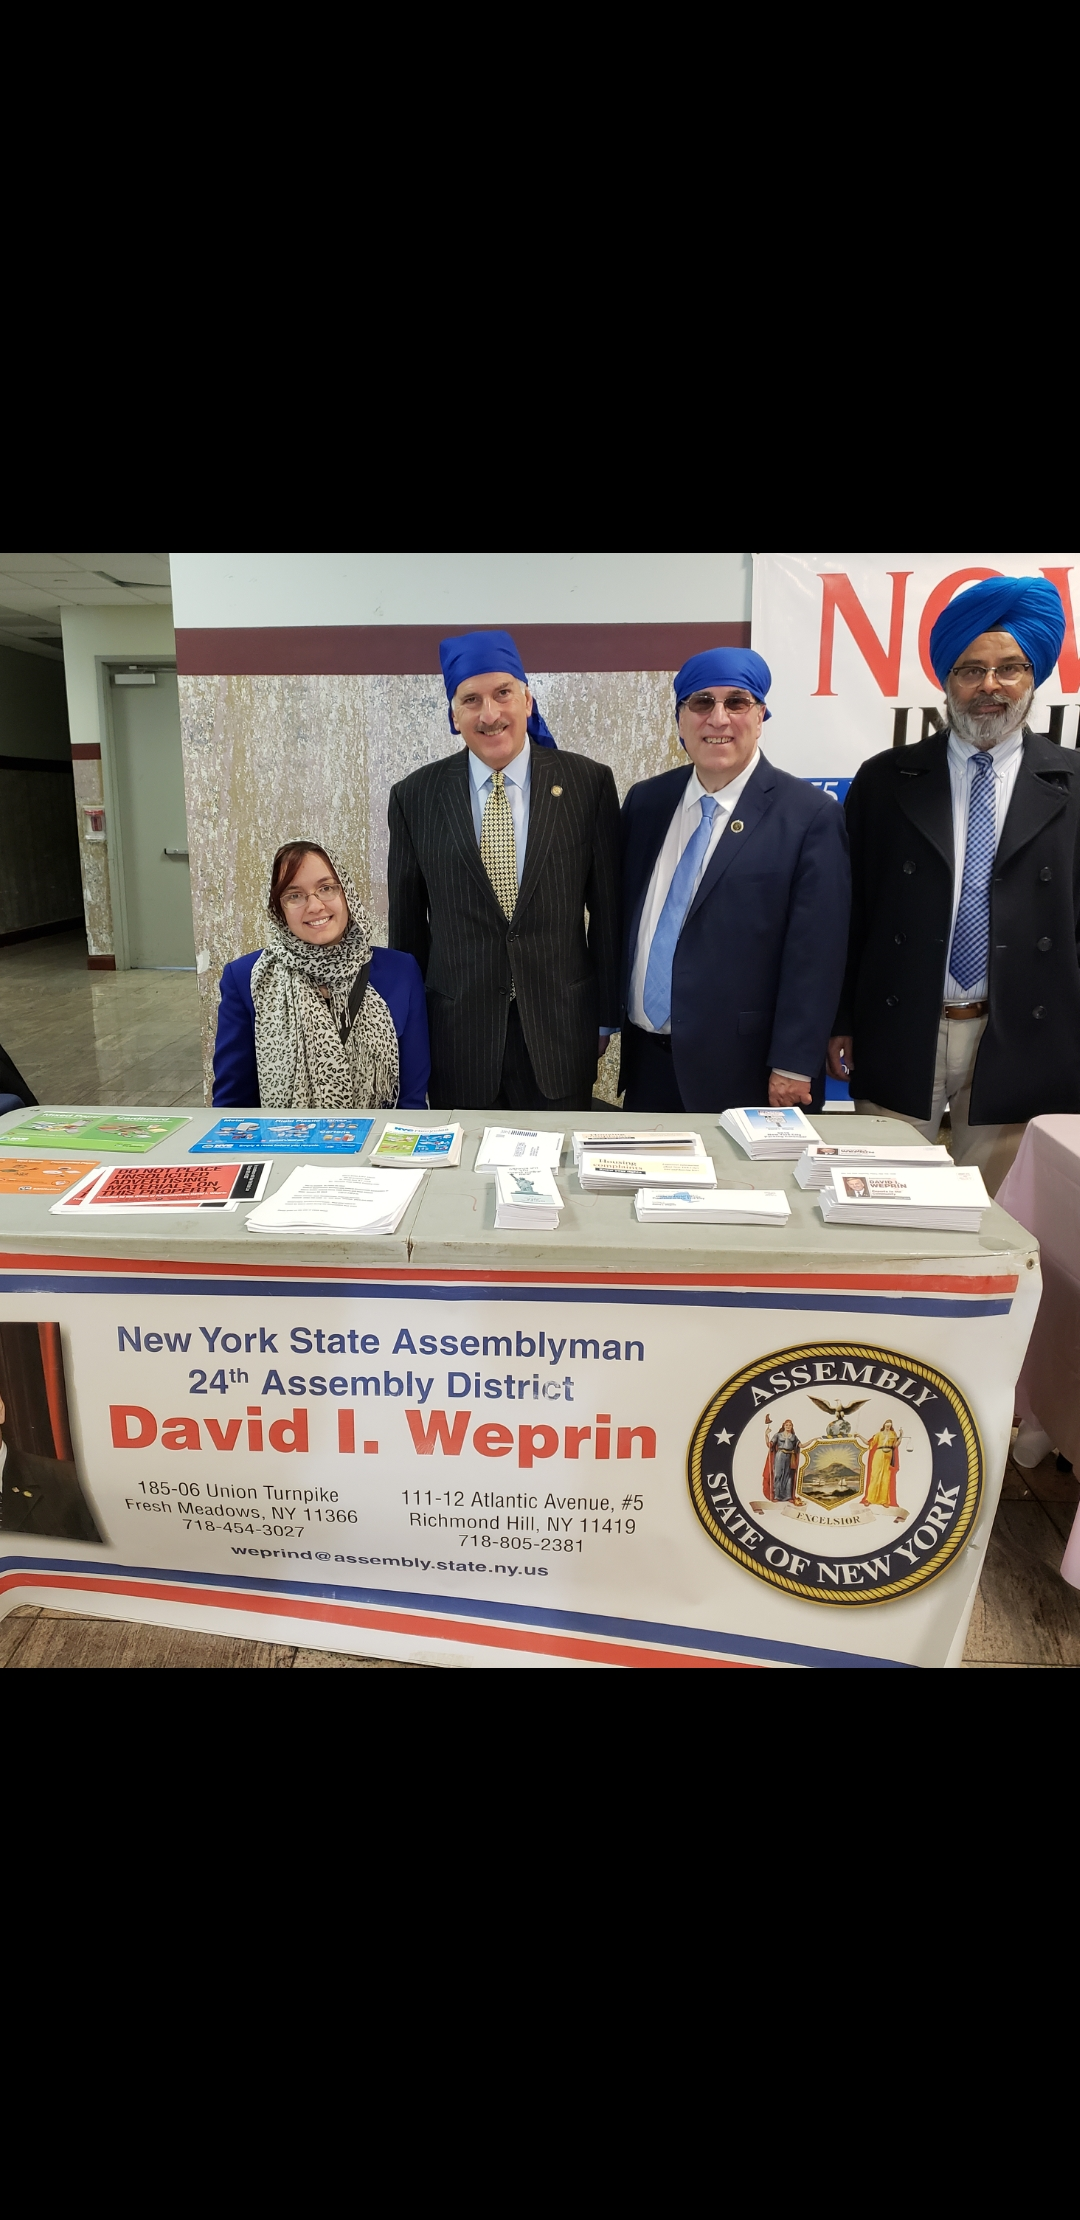 Assemblyman Weprin attended the Sikh Cultural Society Community Resource Fair with staff members Casey Lajszky, Harpreet Singh Toor, and Anthony Lemma to provide information to residents on City and S